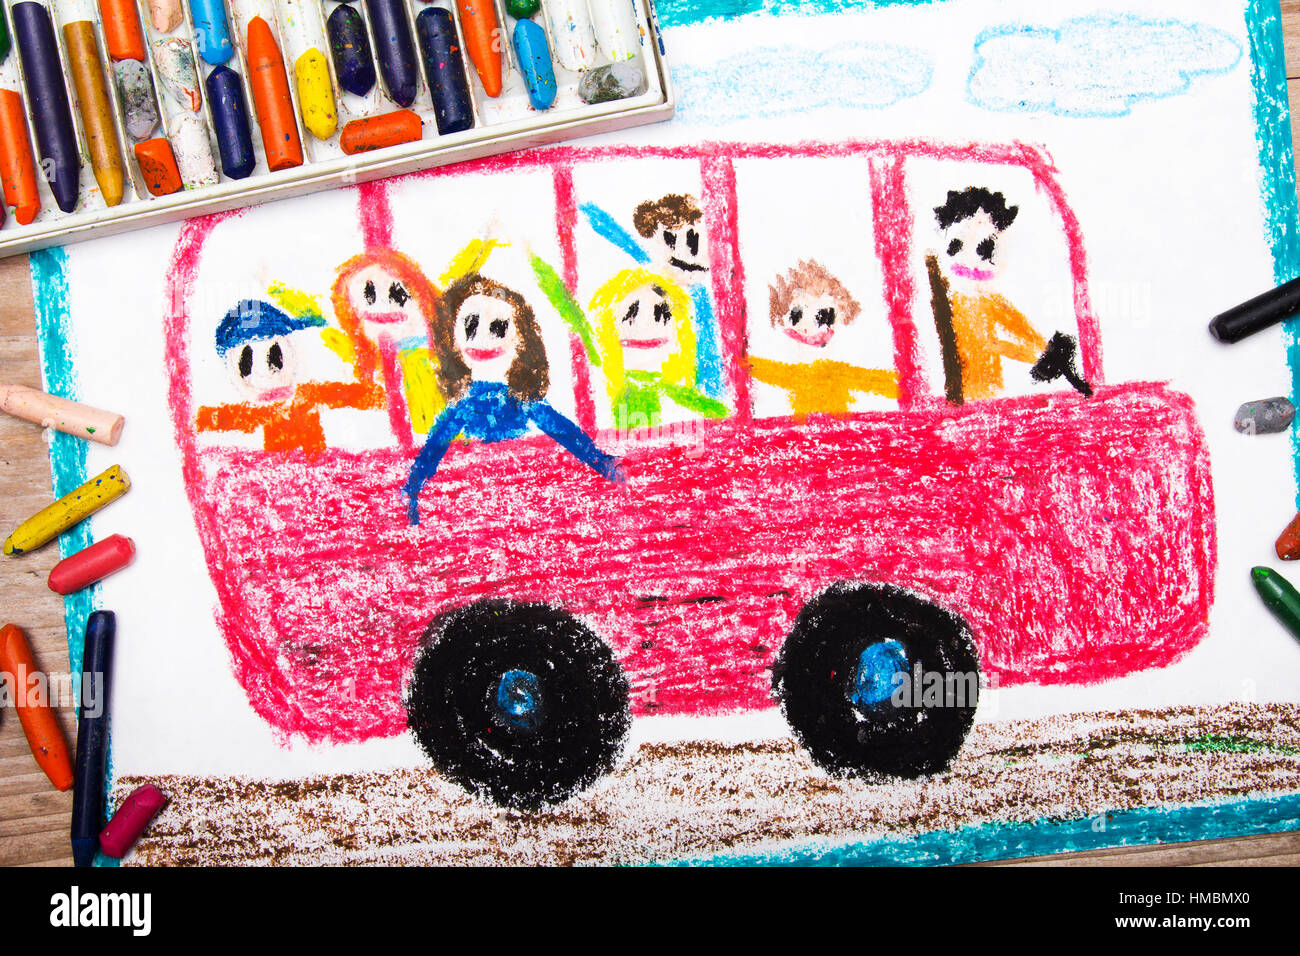 Colorful Drawing Red School Bus With Happy Children